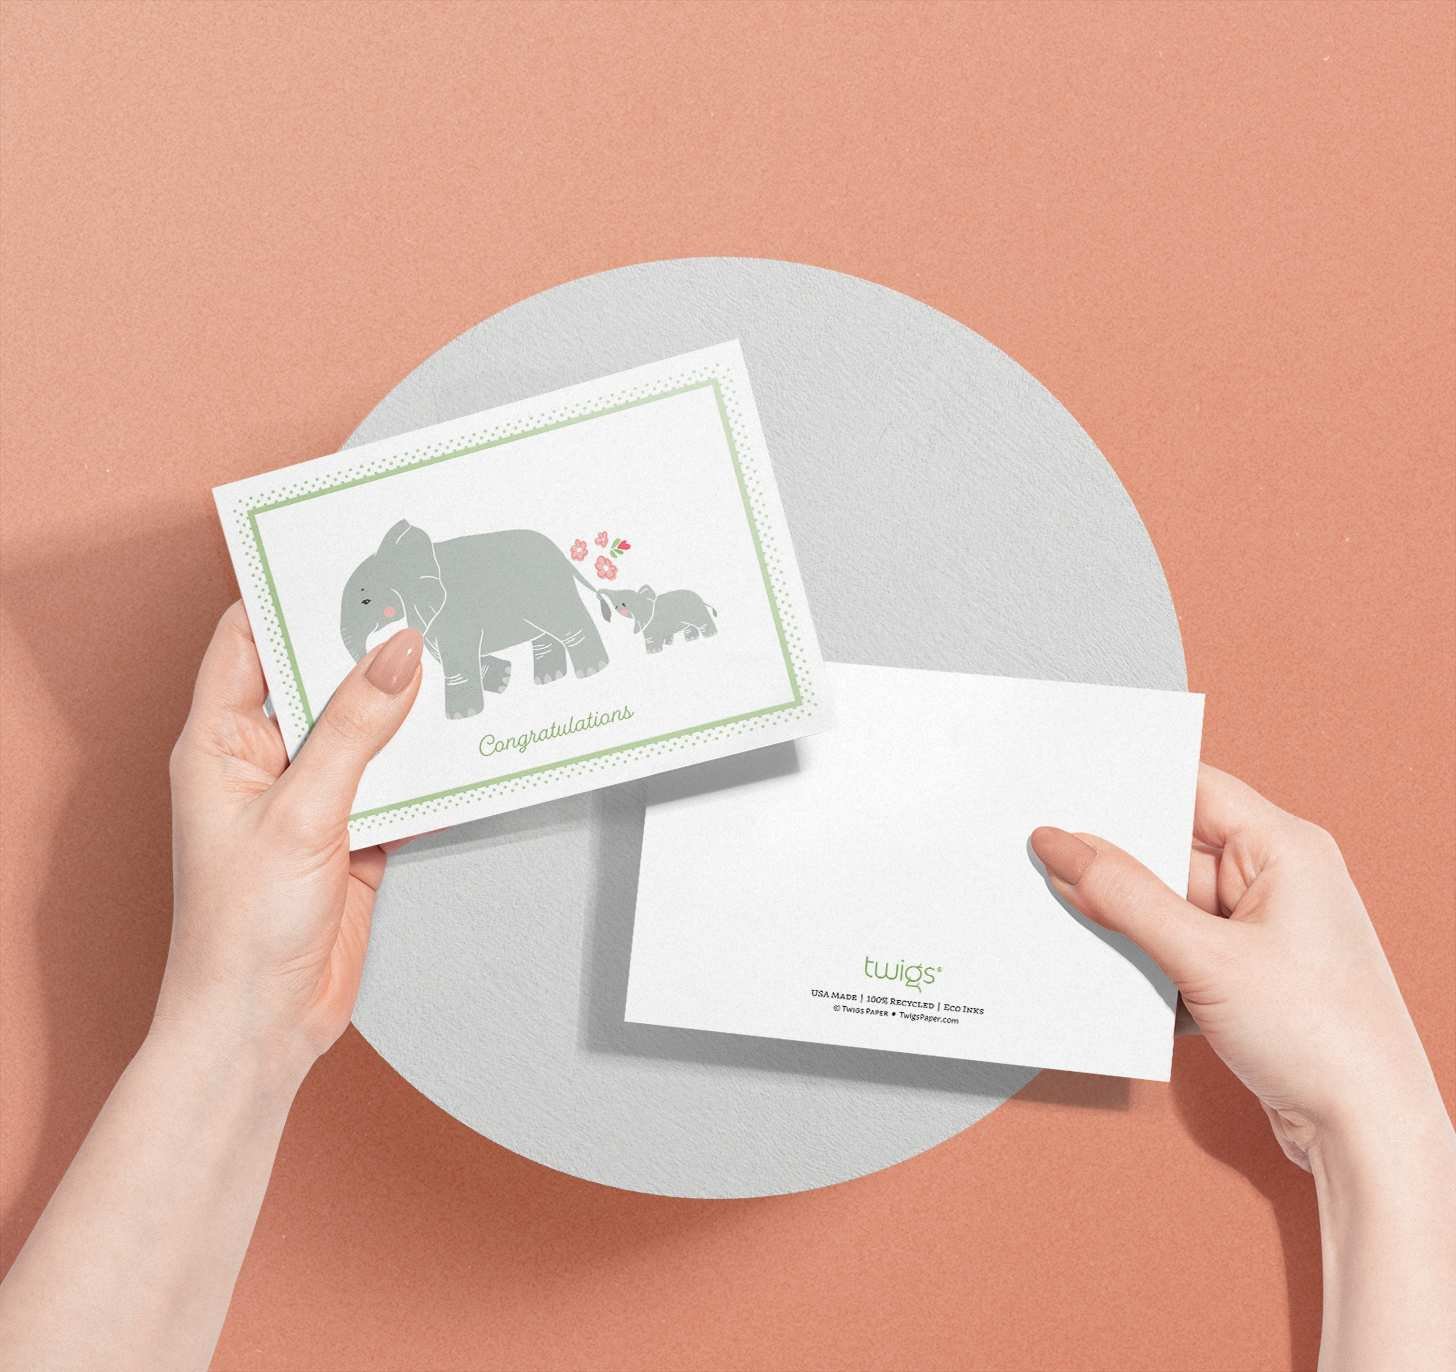 Woman's hands holding two cards with mother and baby elephant designs